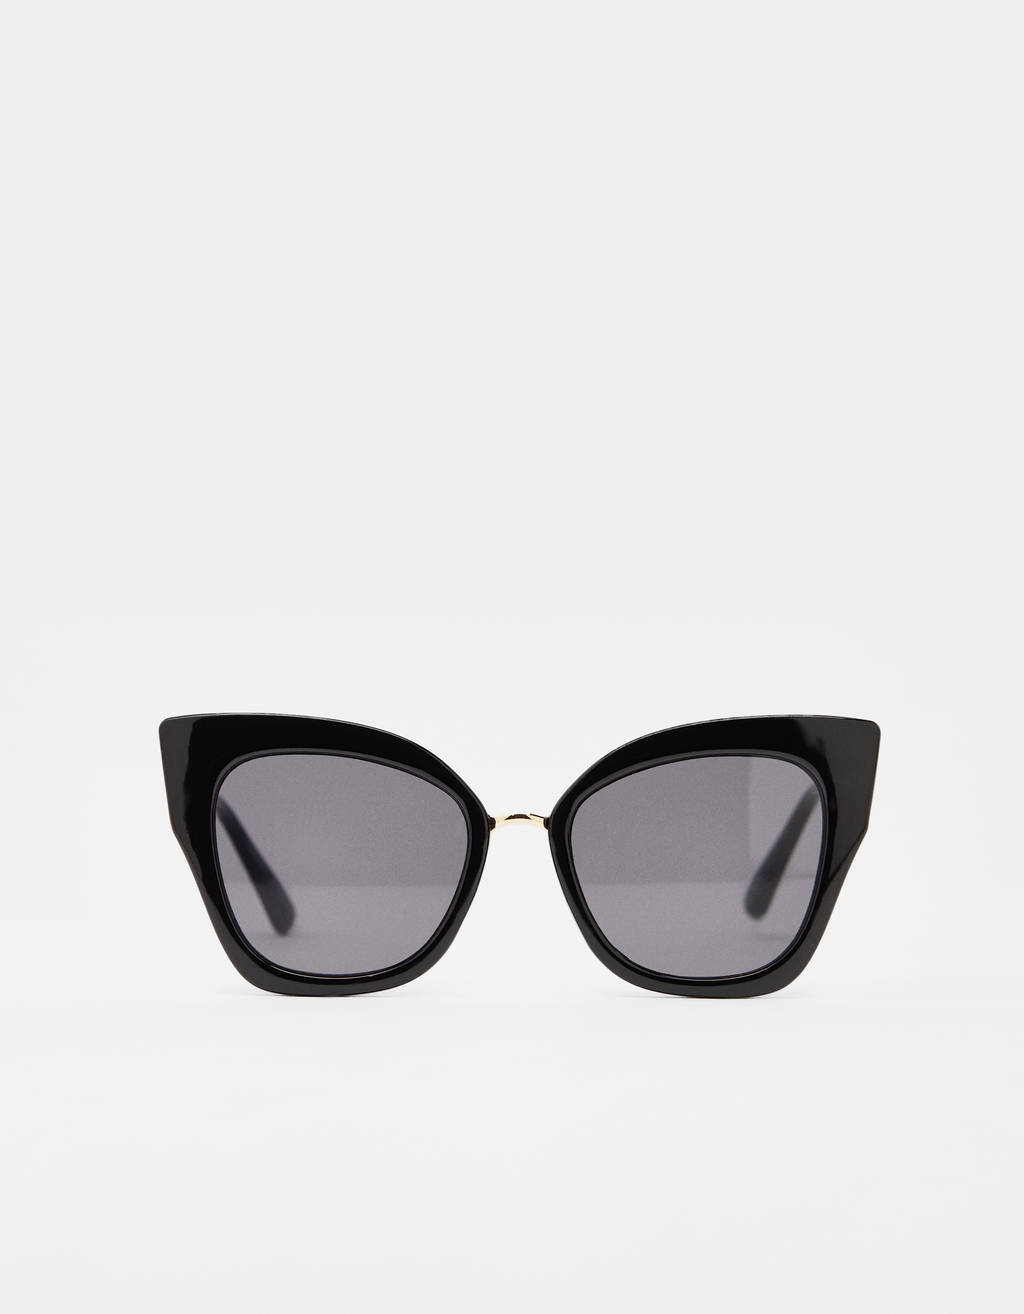 Maxi sunglasses